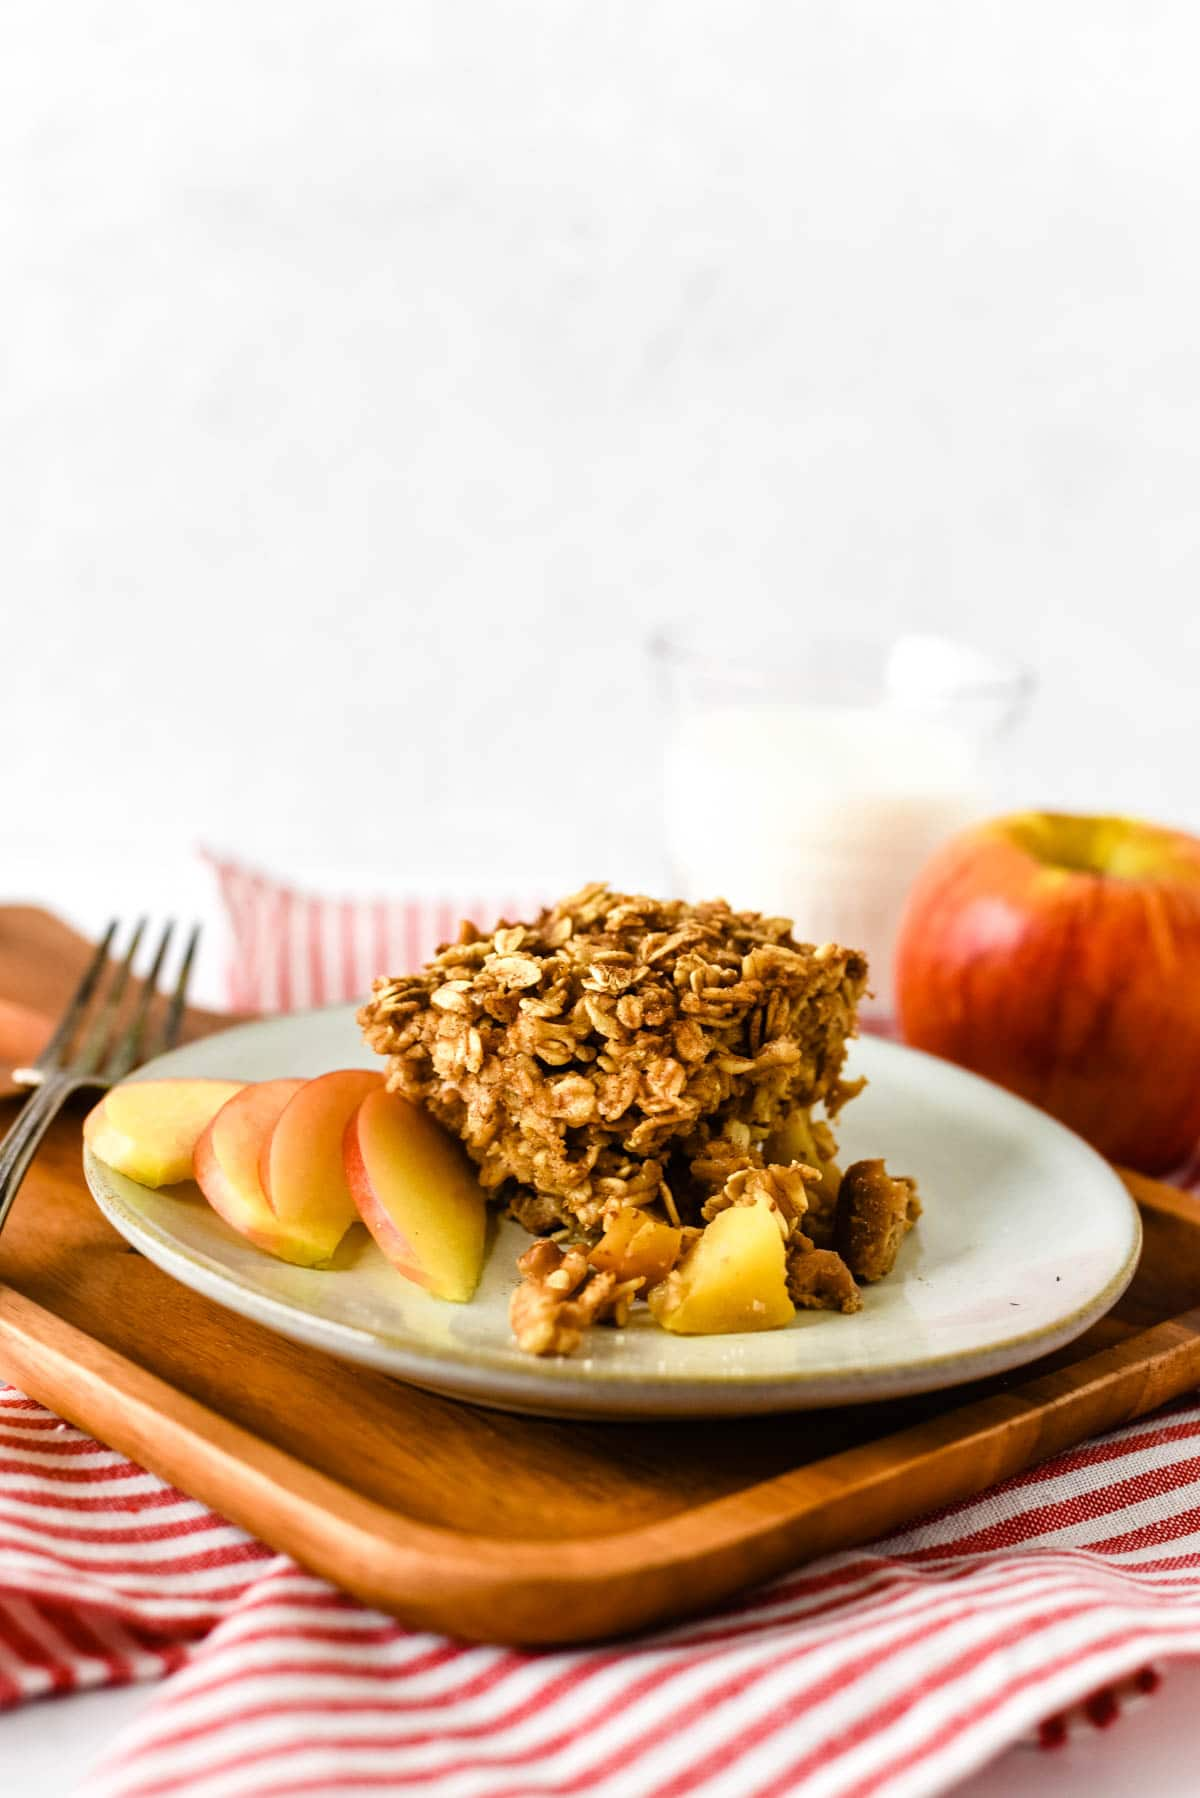 baked oatmeal with apples on plate with apple slices and glass of milk